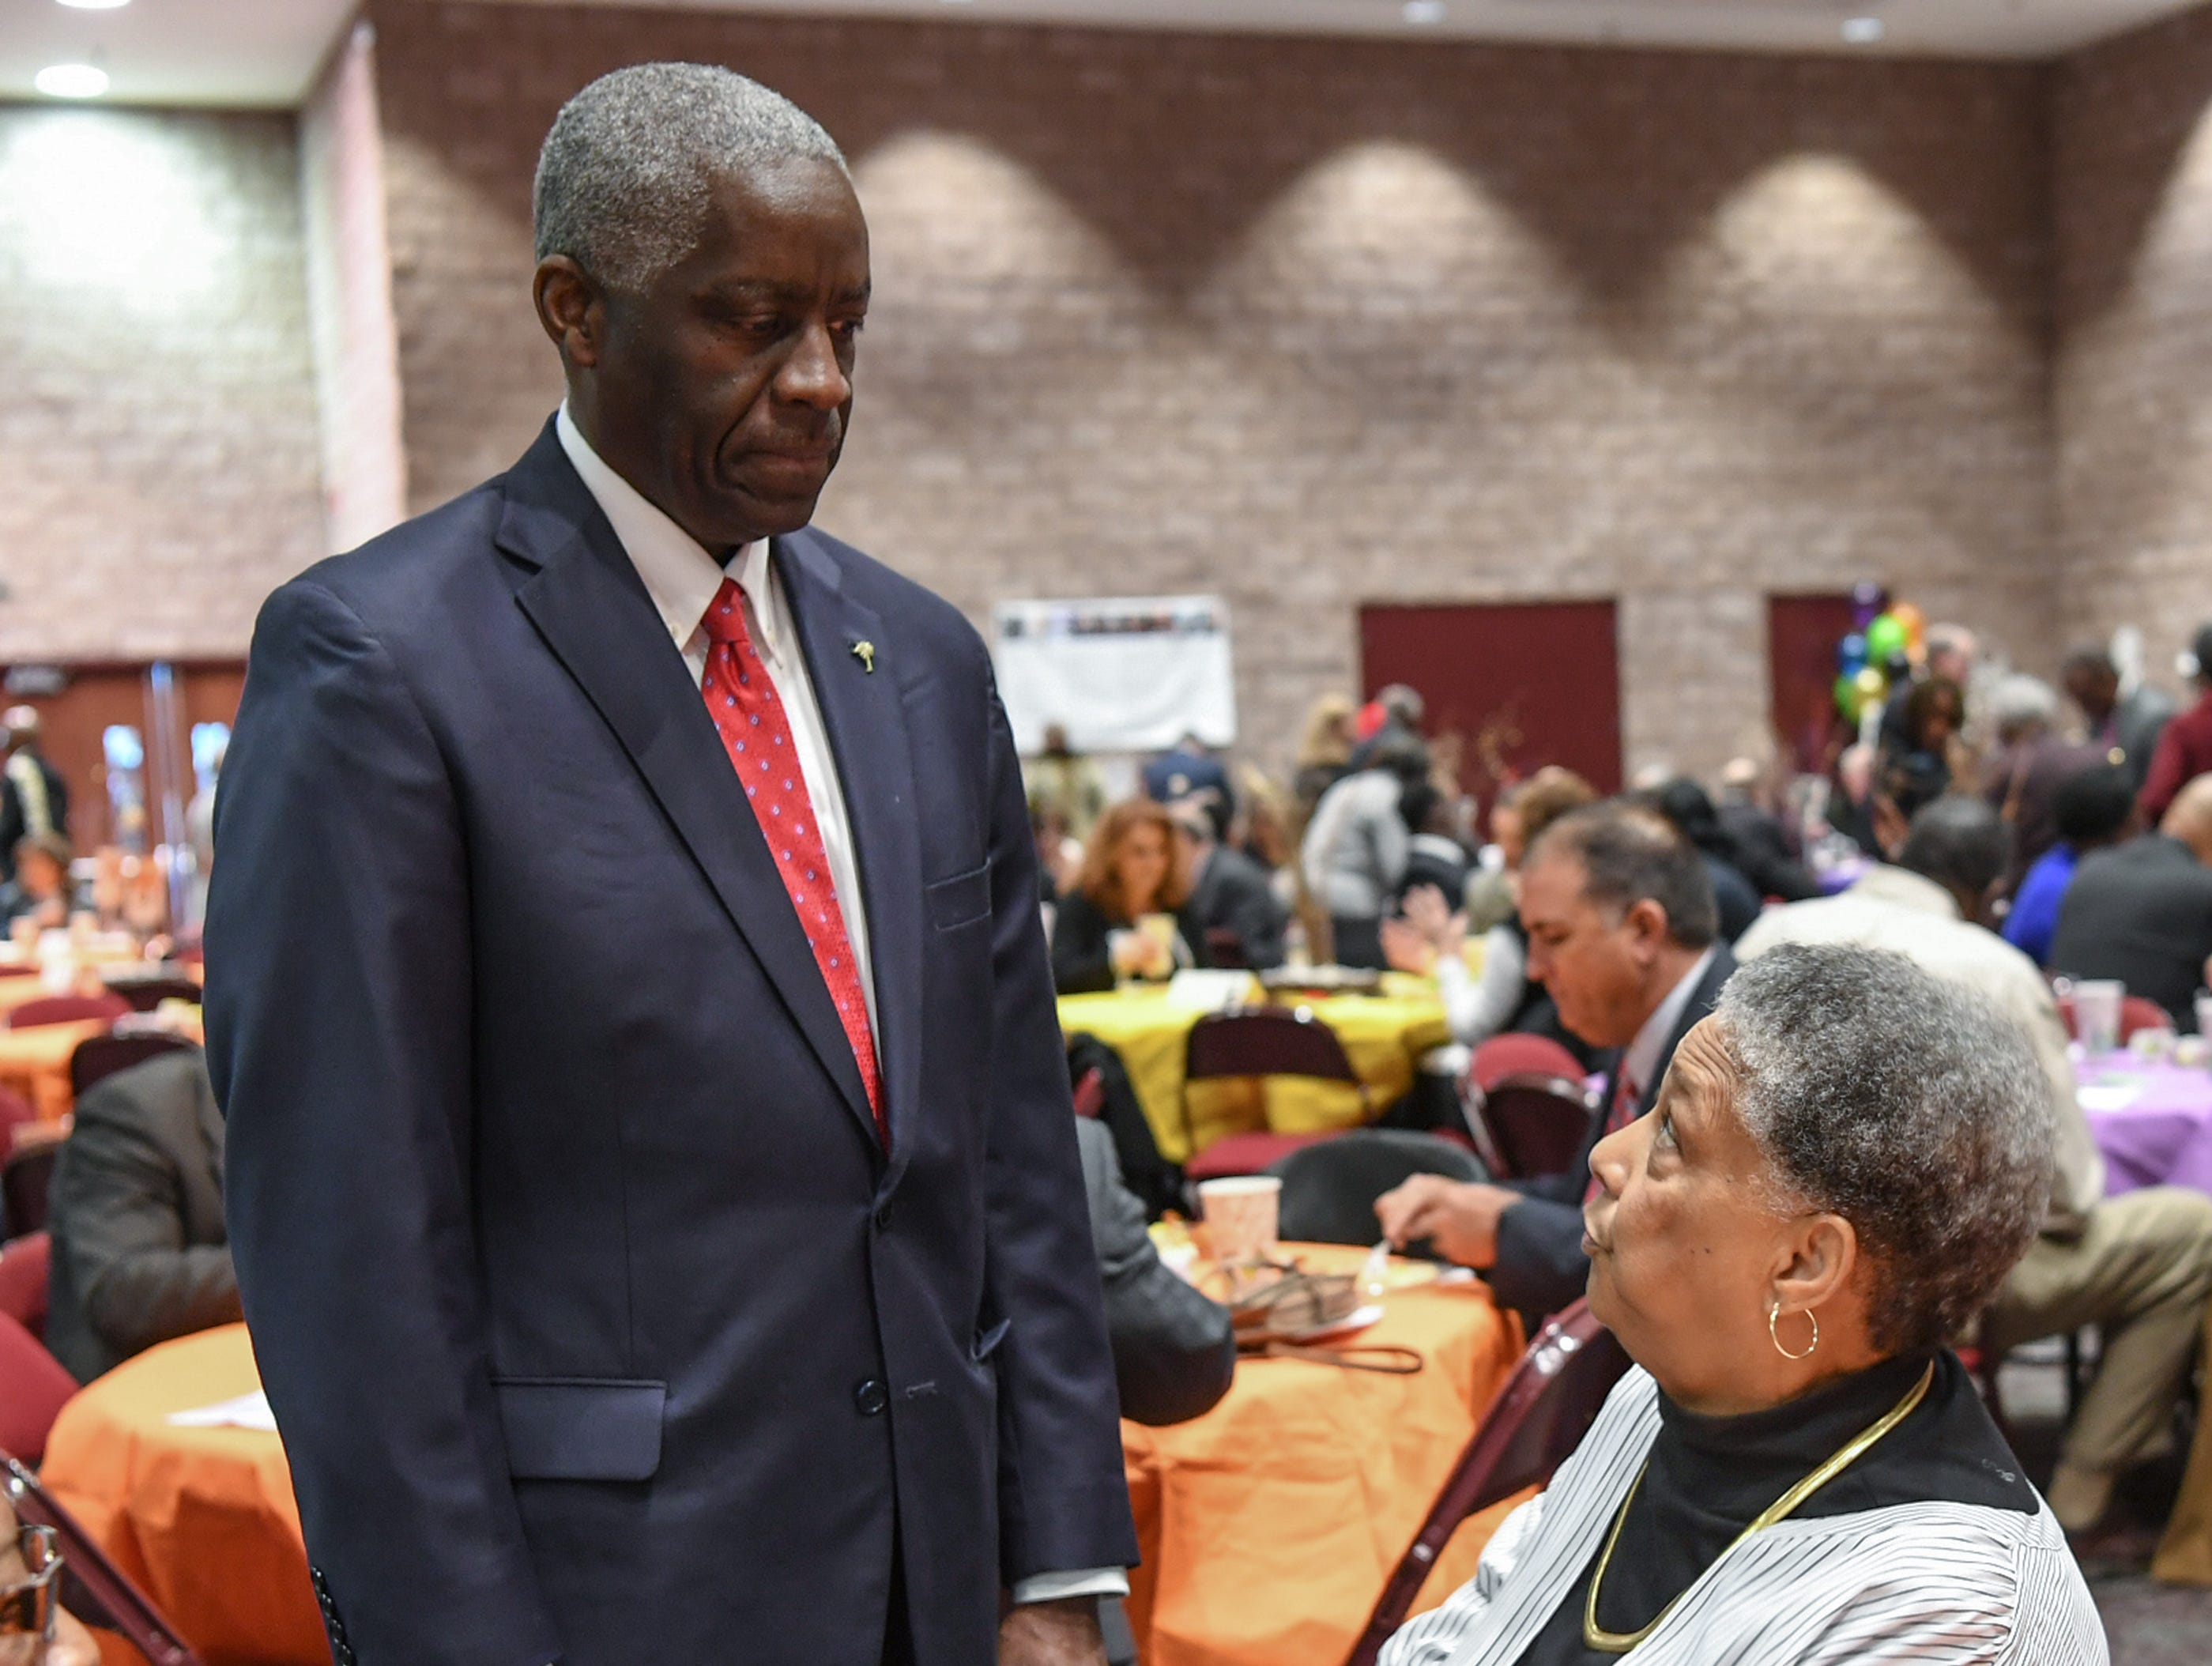 during the Mayor's Martin Luther King Jr Breakfast in the Anderson Civic Center Friday, January 18, 2019.